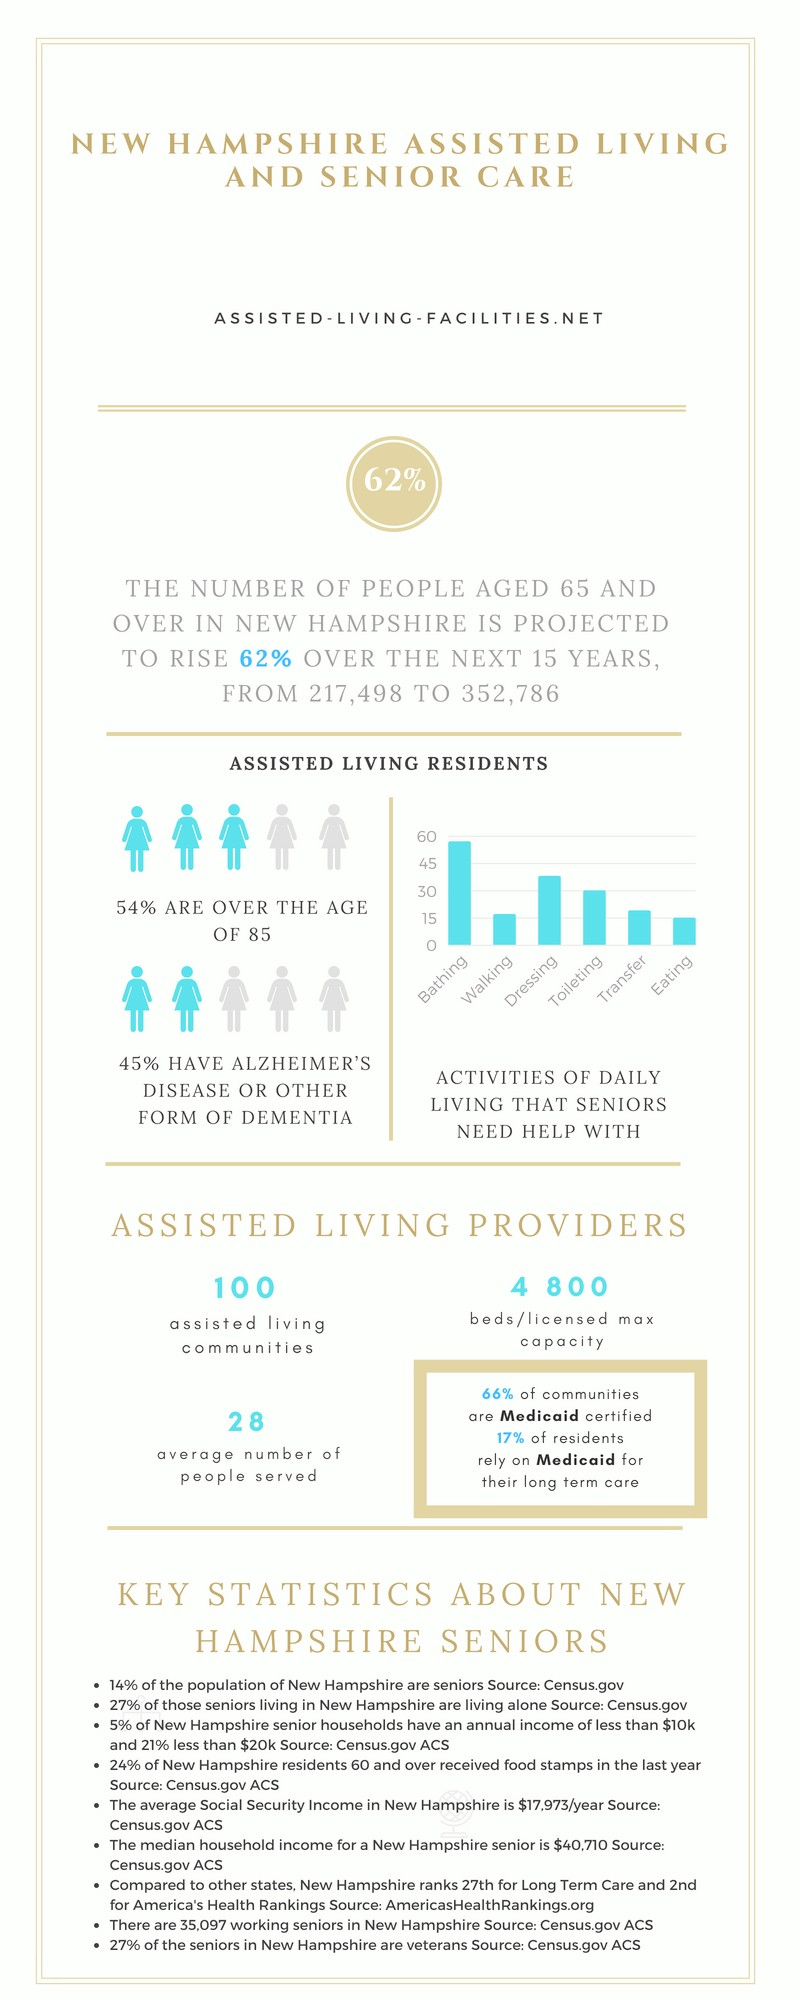 Assisted living facilities in New Hampshire